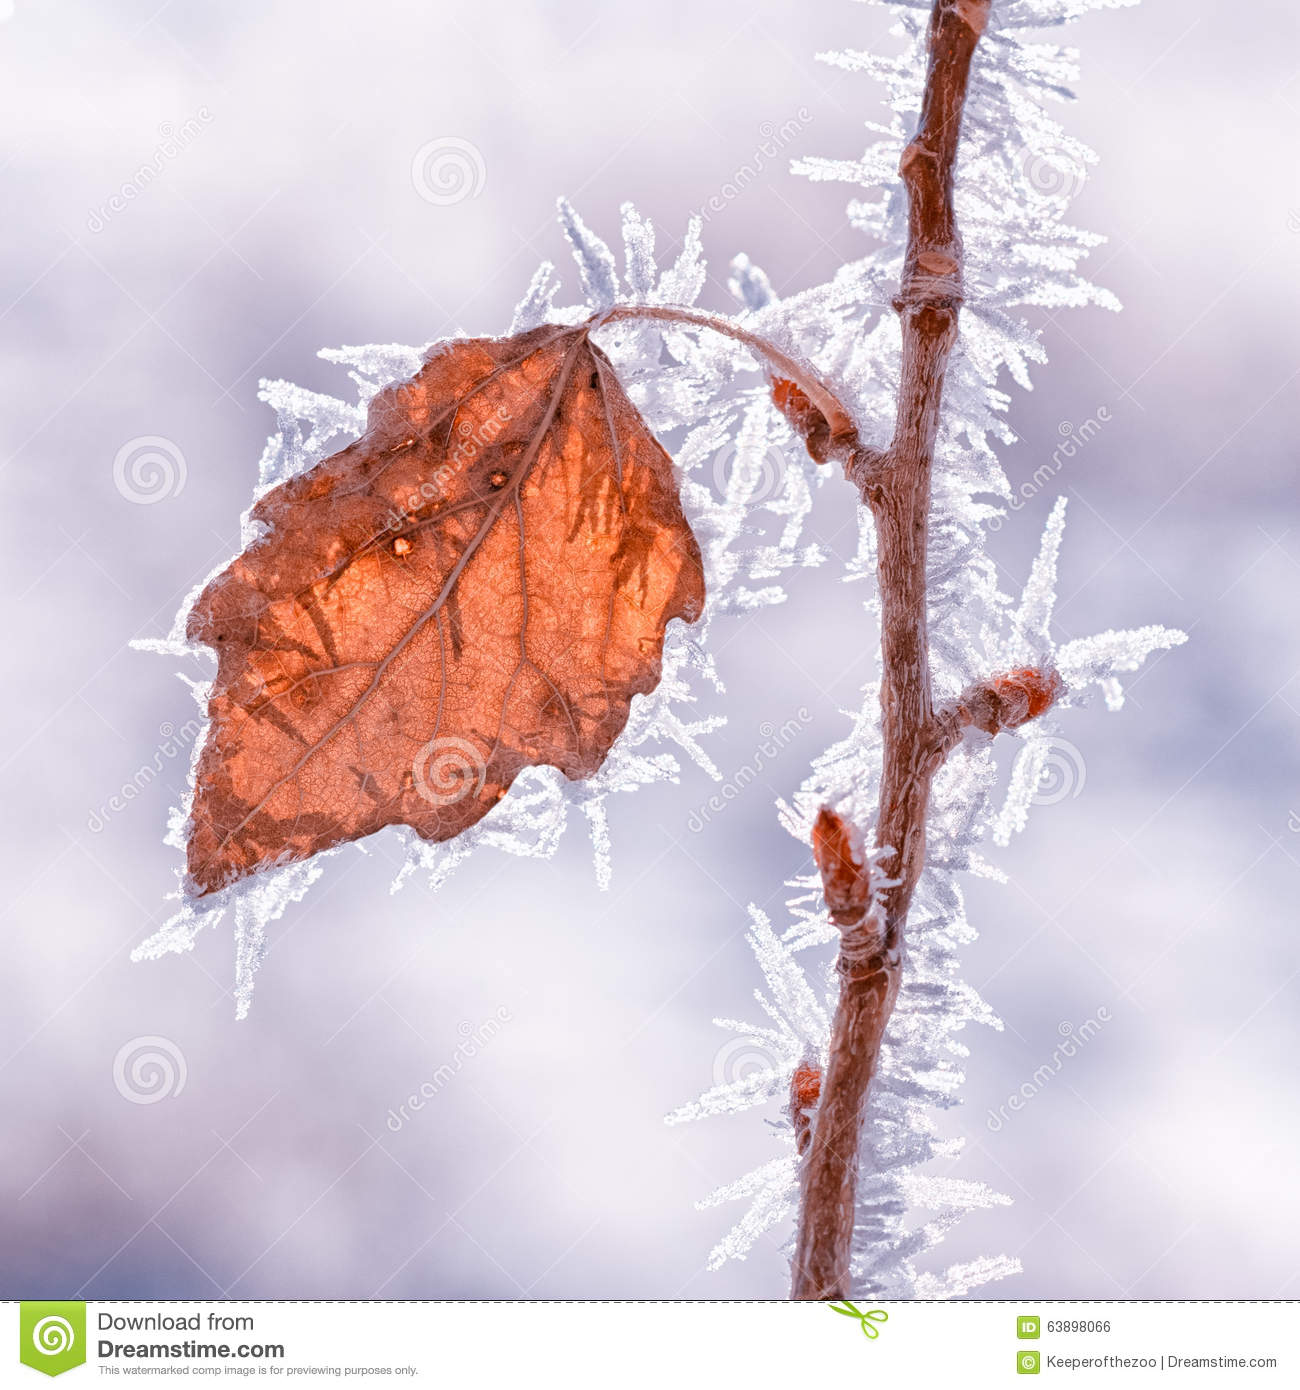 Leaf Covered in Hoarfrost